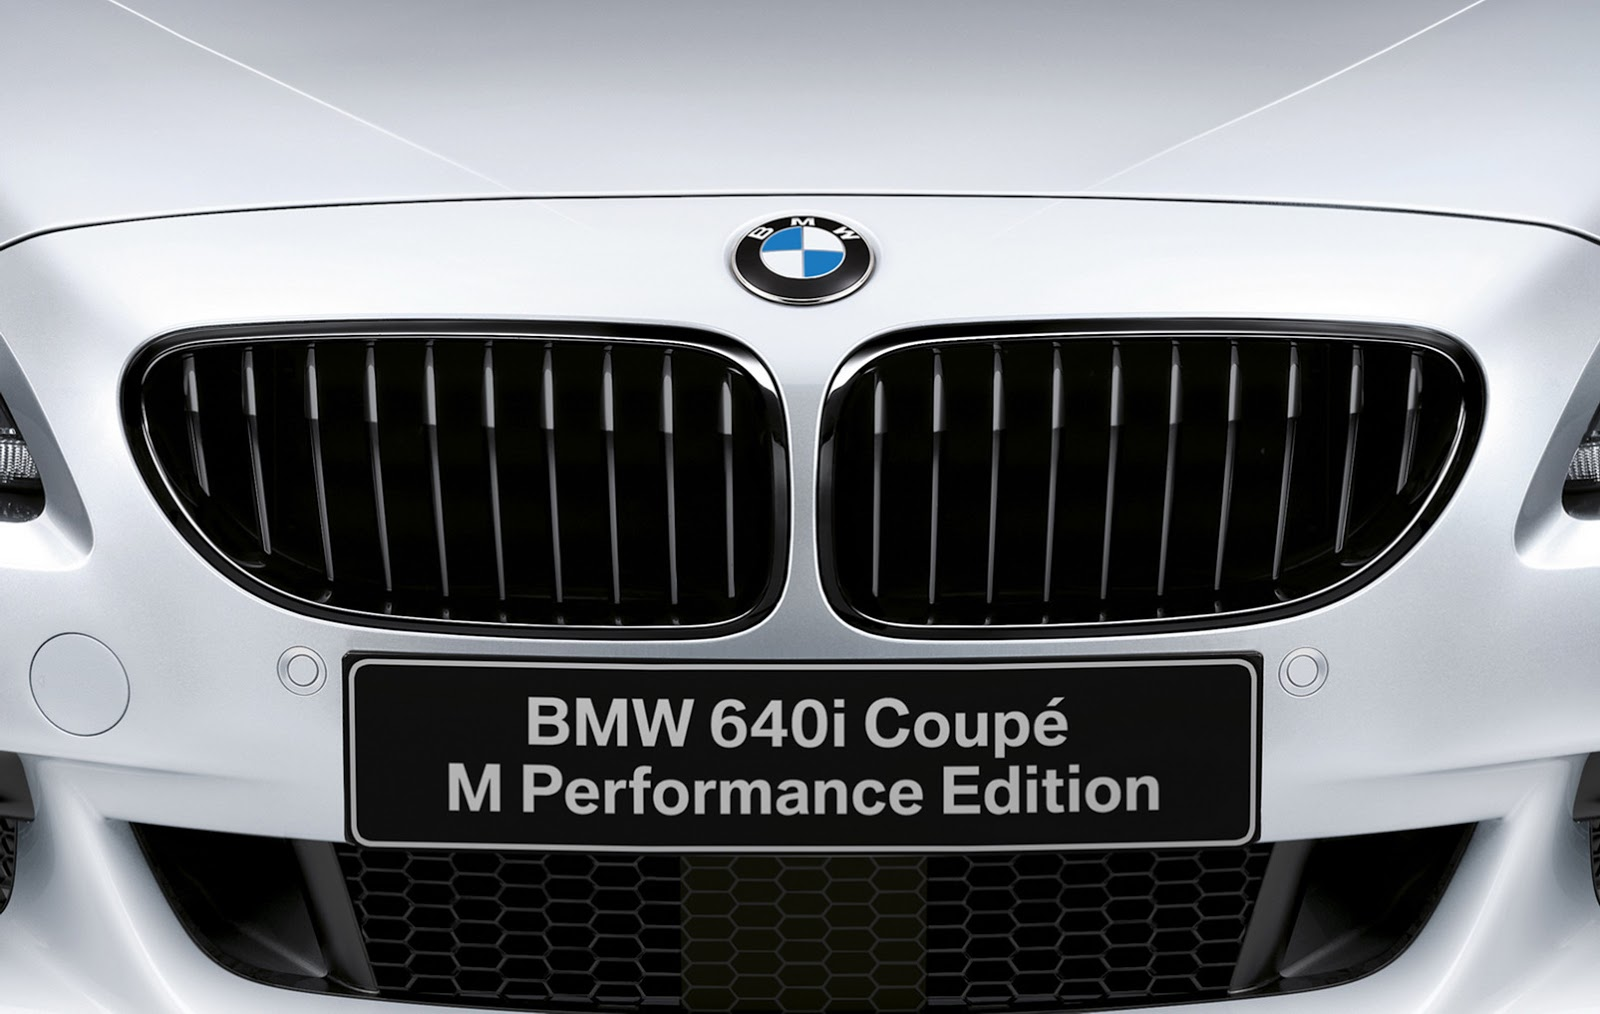 BMW выпустил 640i 2016 Coupe M Performance Edition